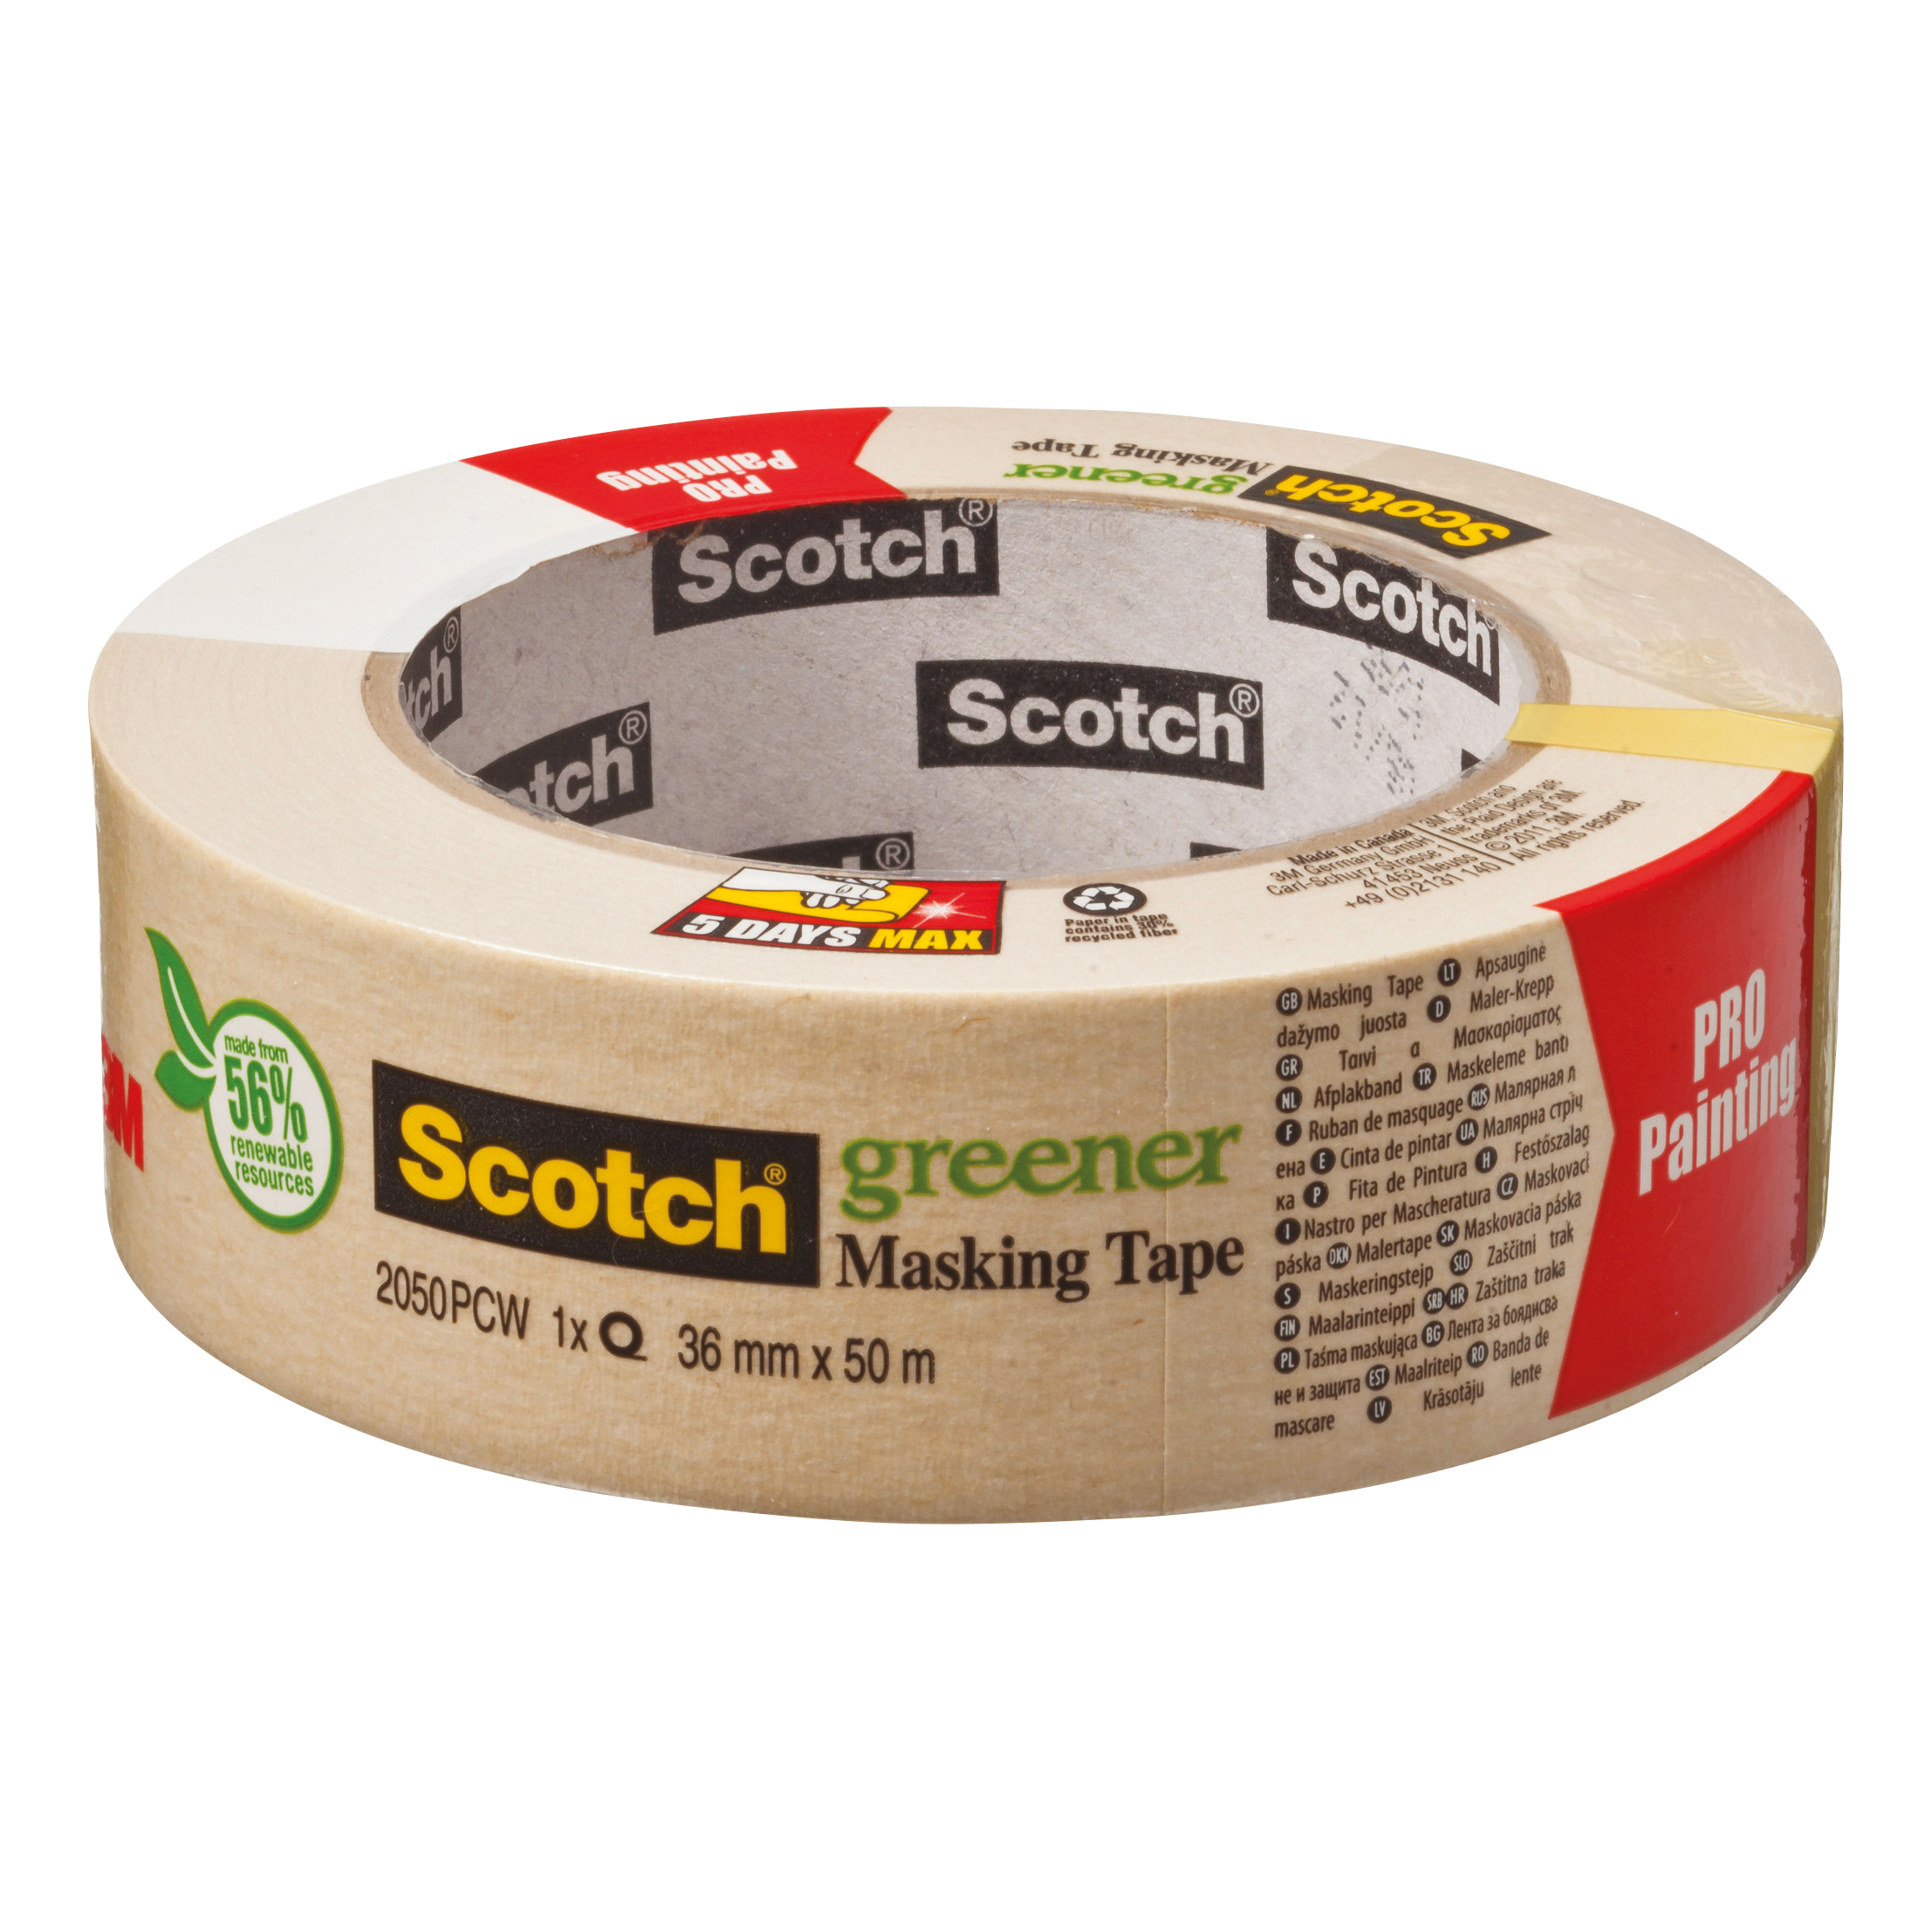 Masking Tape Scotch Greener Masking Tape 36mmx50m Ref 2050 1.5A PCW